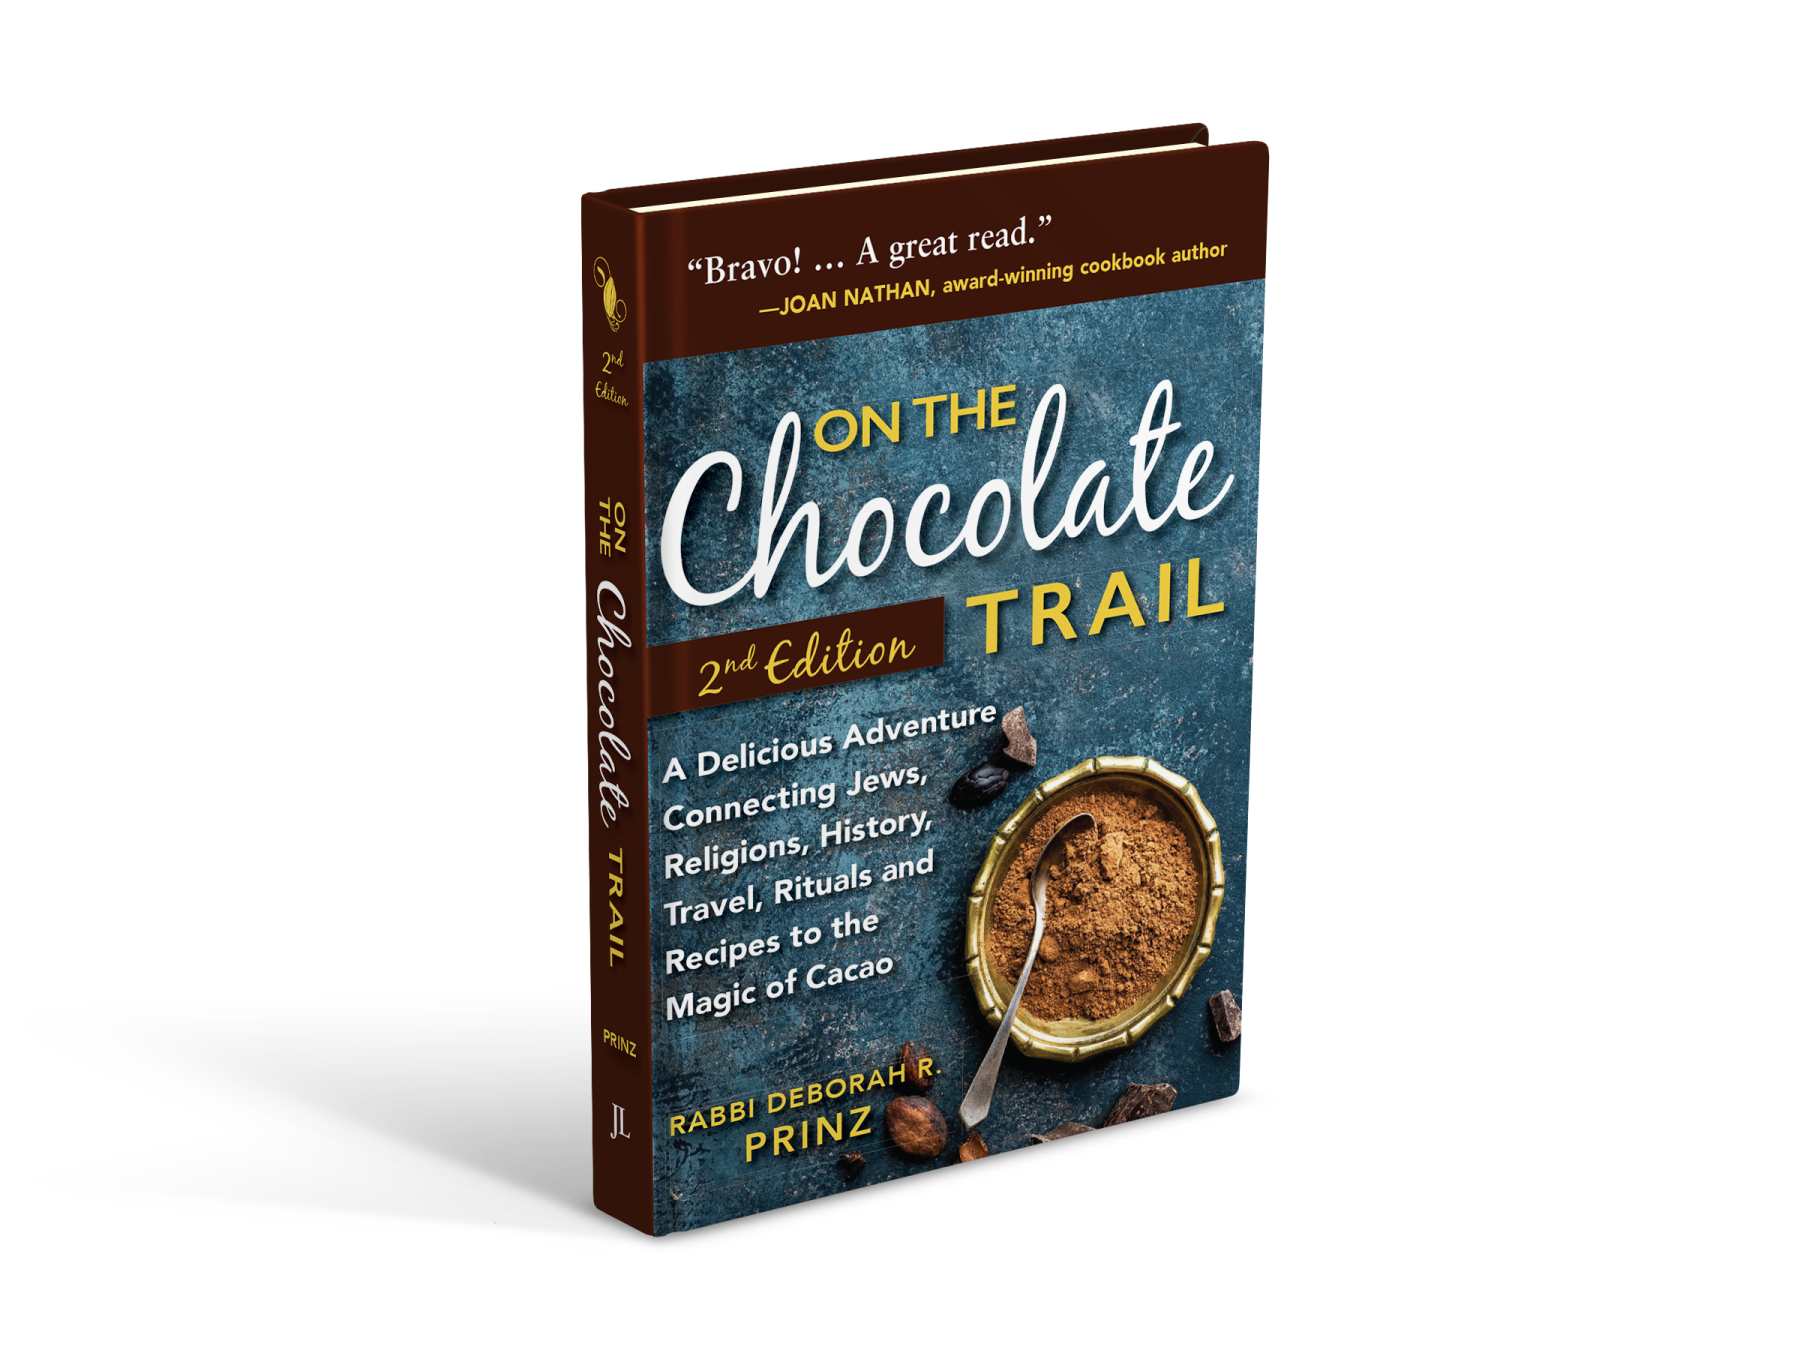 Hardcover mockup_#2 On the Chocolate Trail copy 2